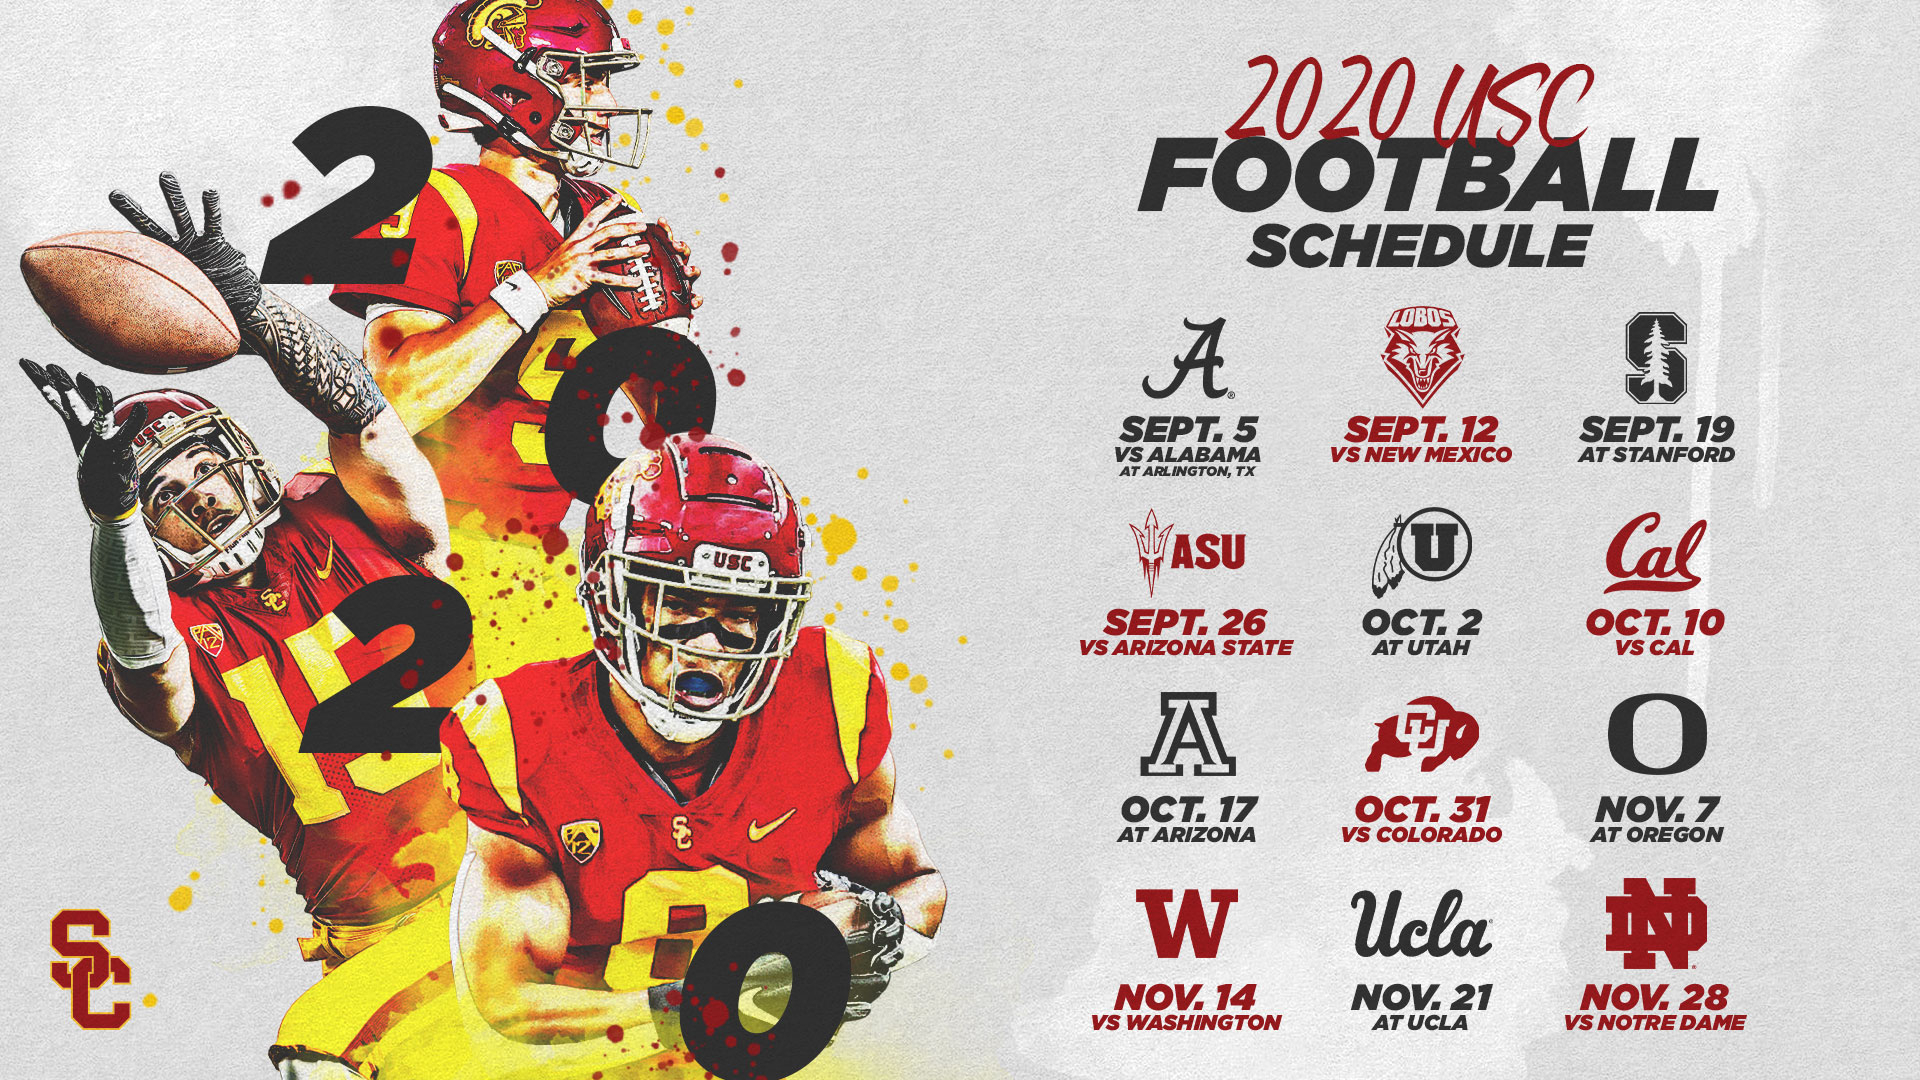 Usc'S 2020 Football Schedule Announced - Usc Athletics